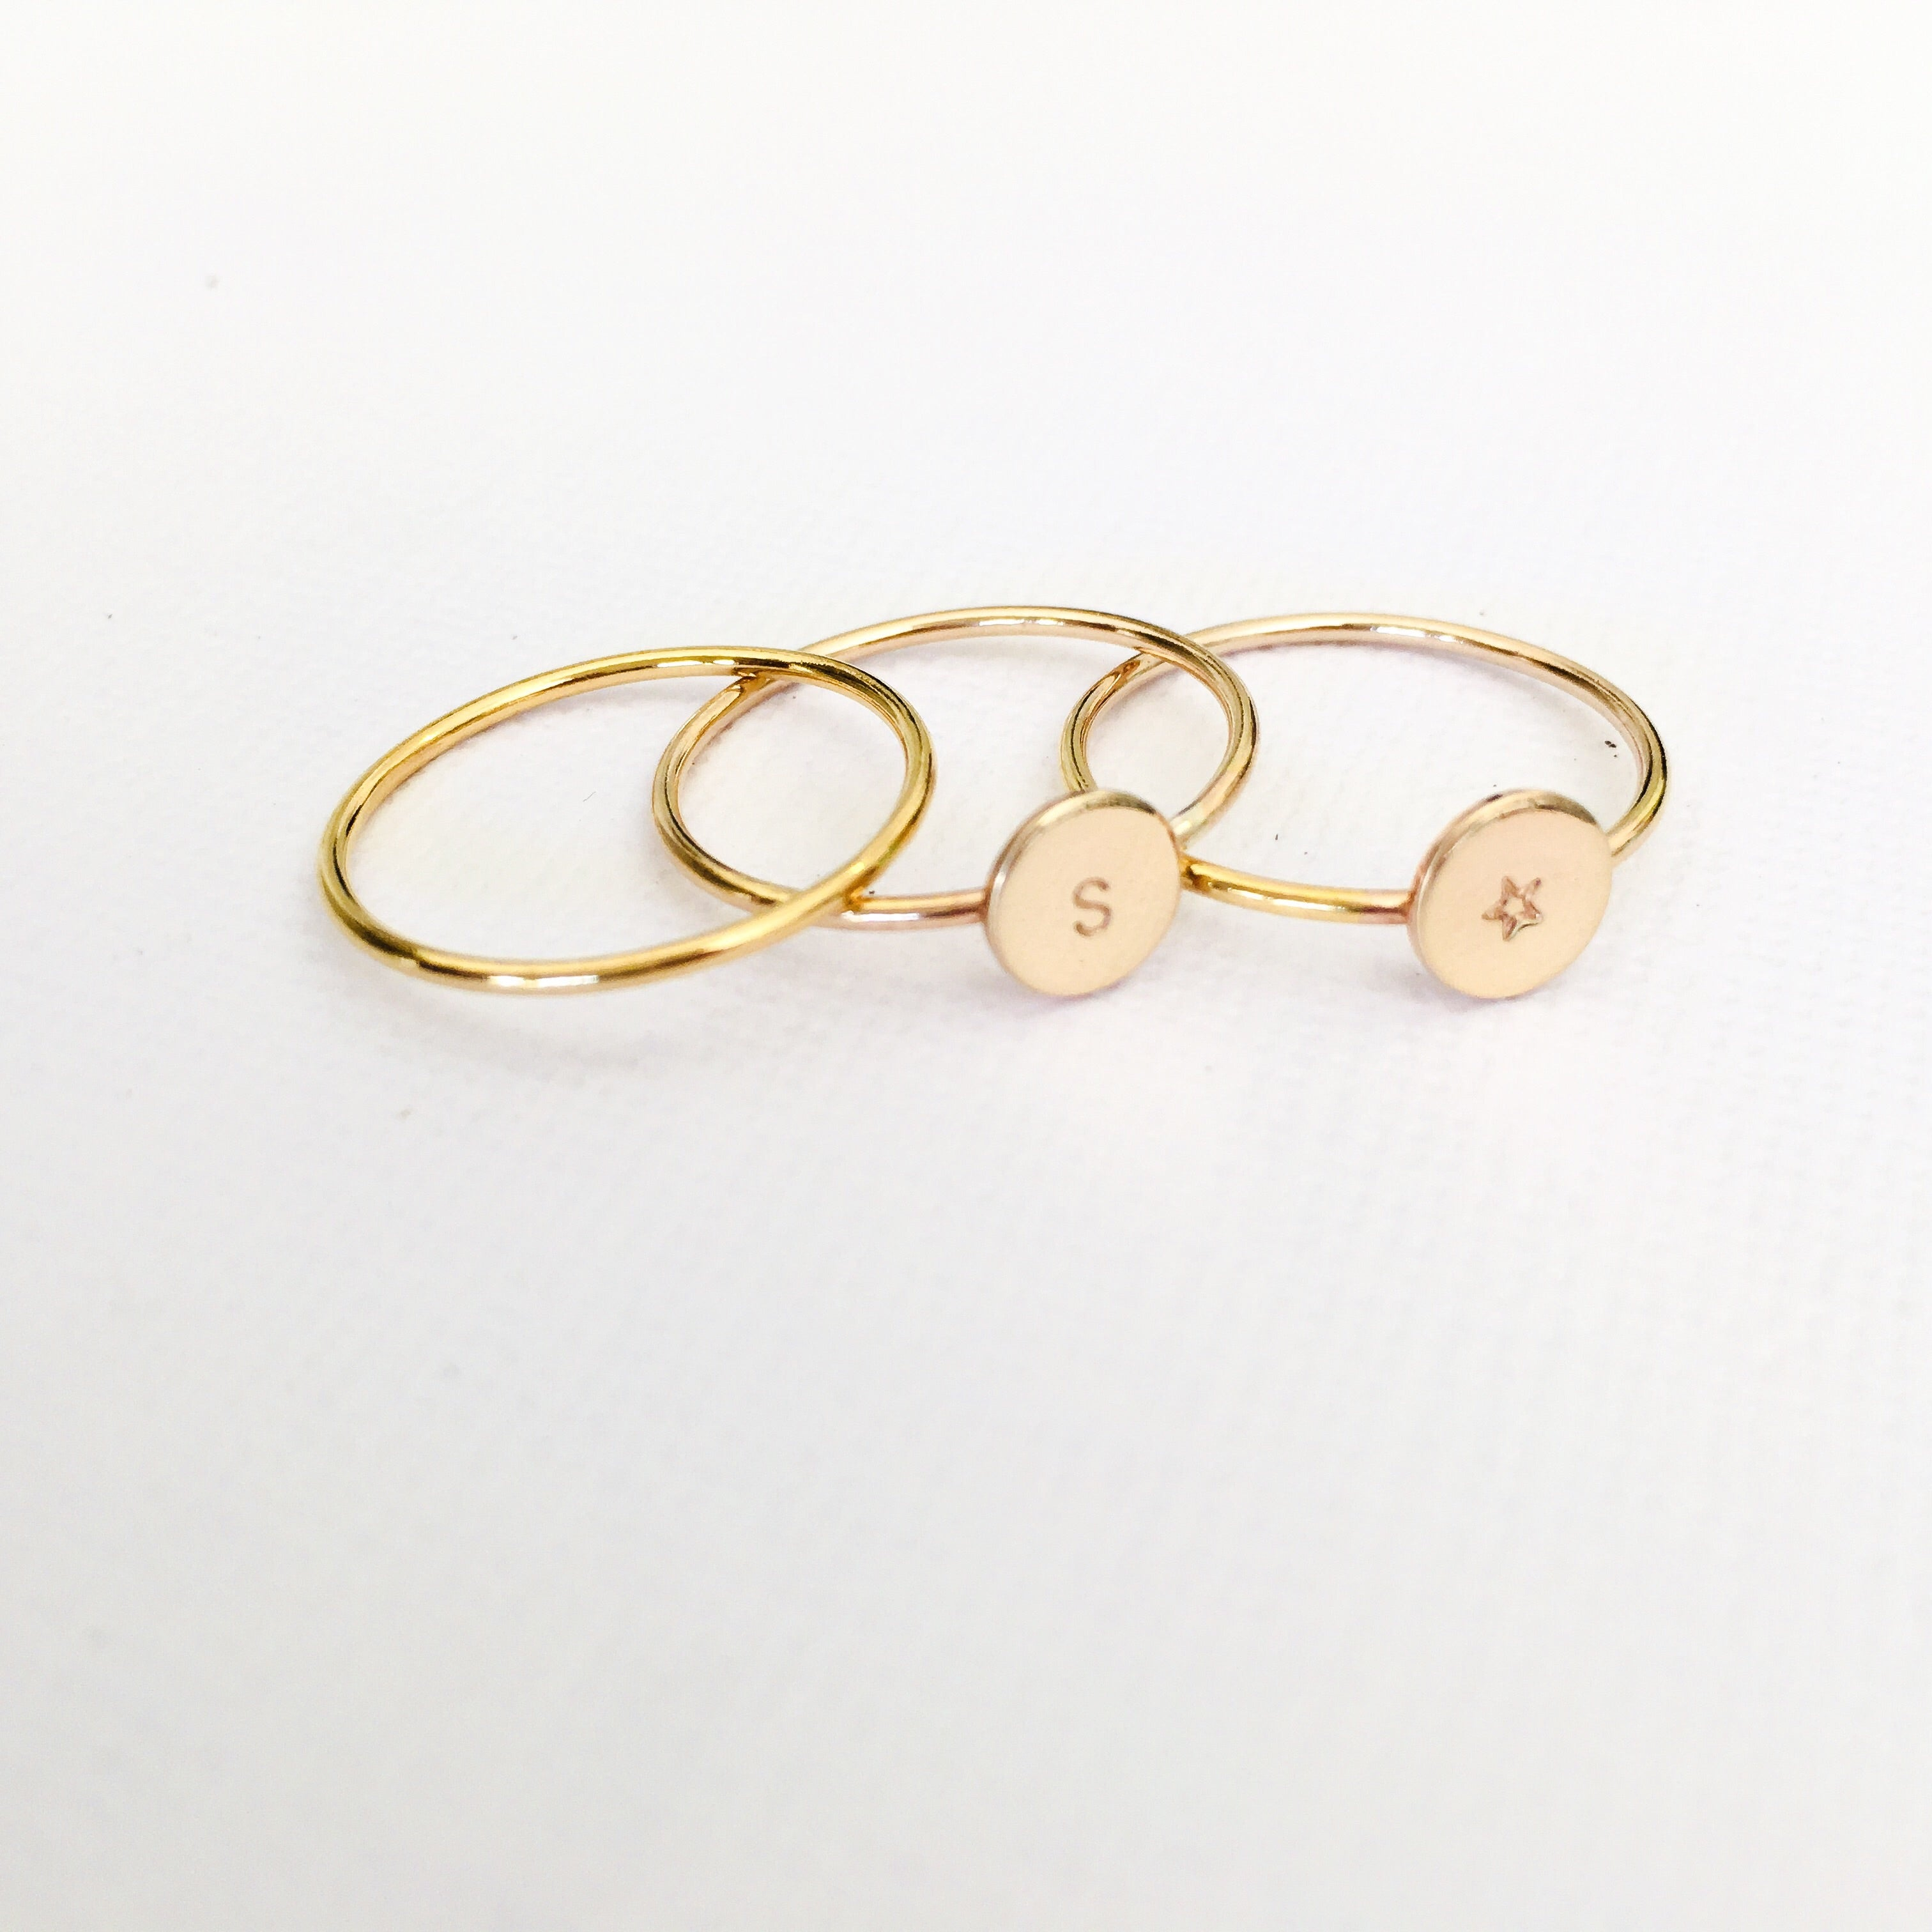 3 Stacking Rings